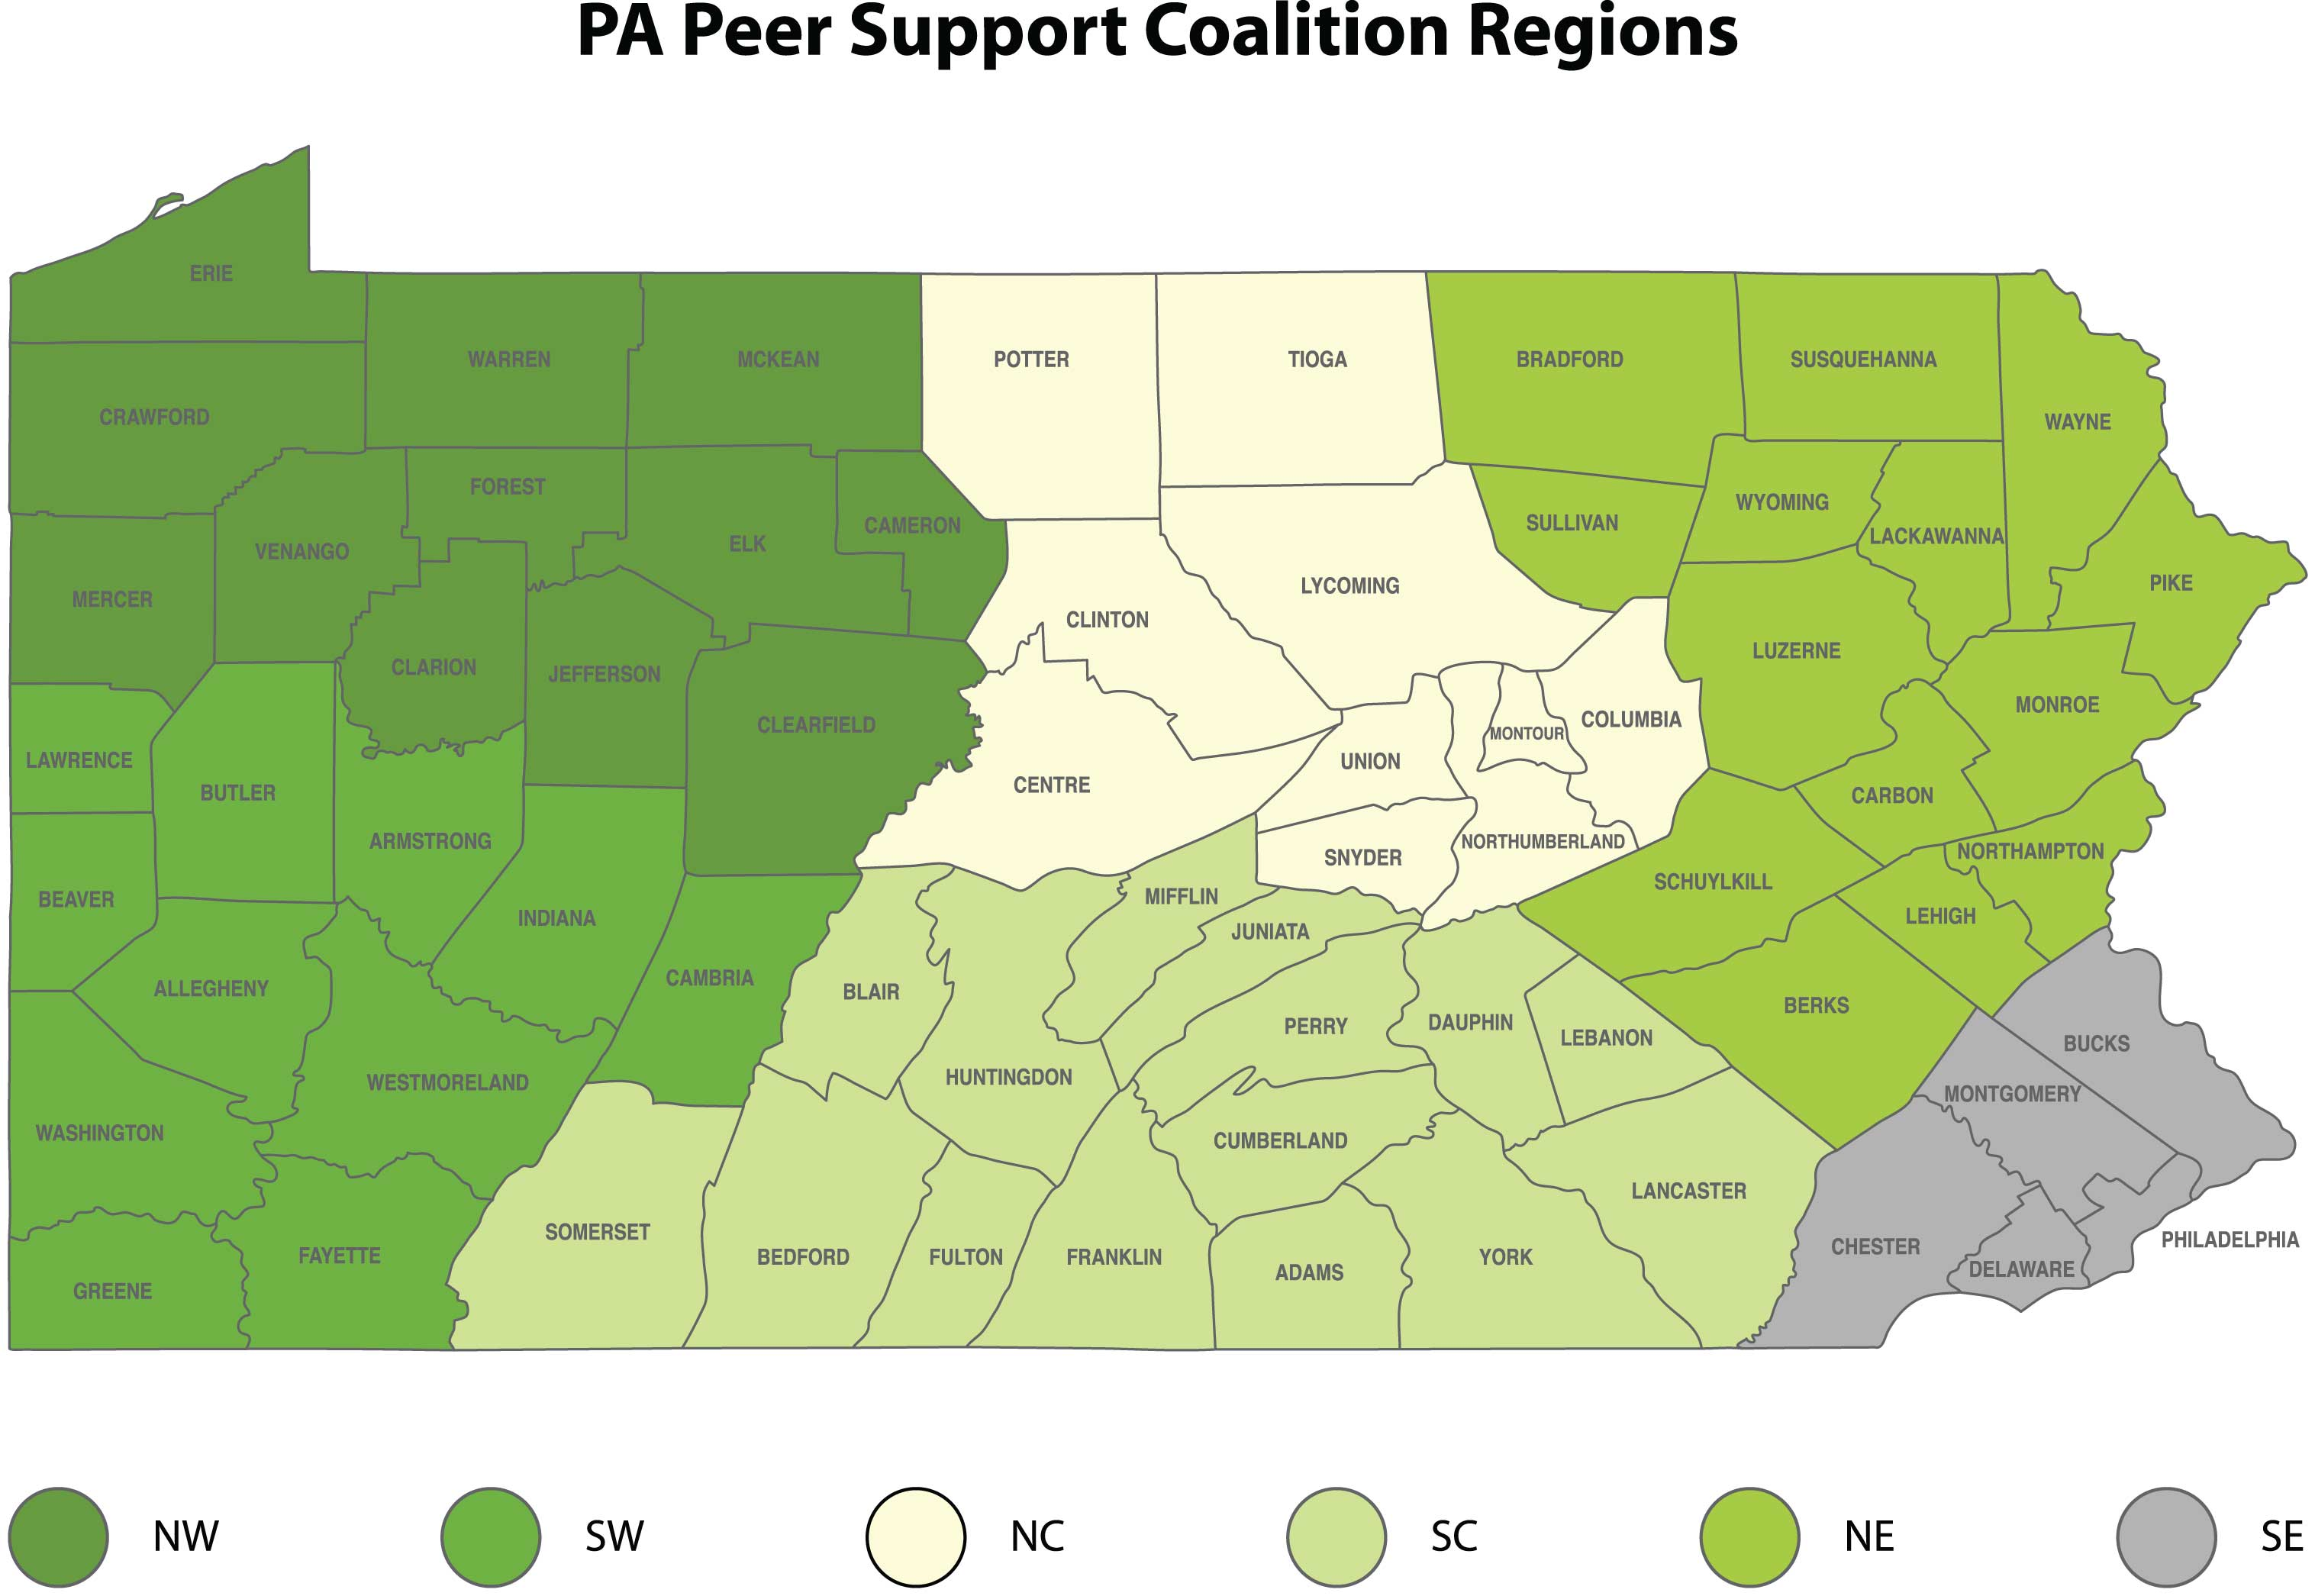 Coalition Structure - PA r Support Coalition on map of baltimore county pa, events of york county pa, map of adams county pa, map of erie county pa, map of san diego county ca, map of york college pa, map of douglas county or, map of grafton, il, map of york county nc, map of new castle county de, map of york county ne, map of mckean county pa, map of franklin county pa, map of cumberland county pa, map of warren county pa, map of chester county pa, map of potter county pa, map of york city pa, cities in lebanon county pa, map of pennsylvania,